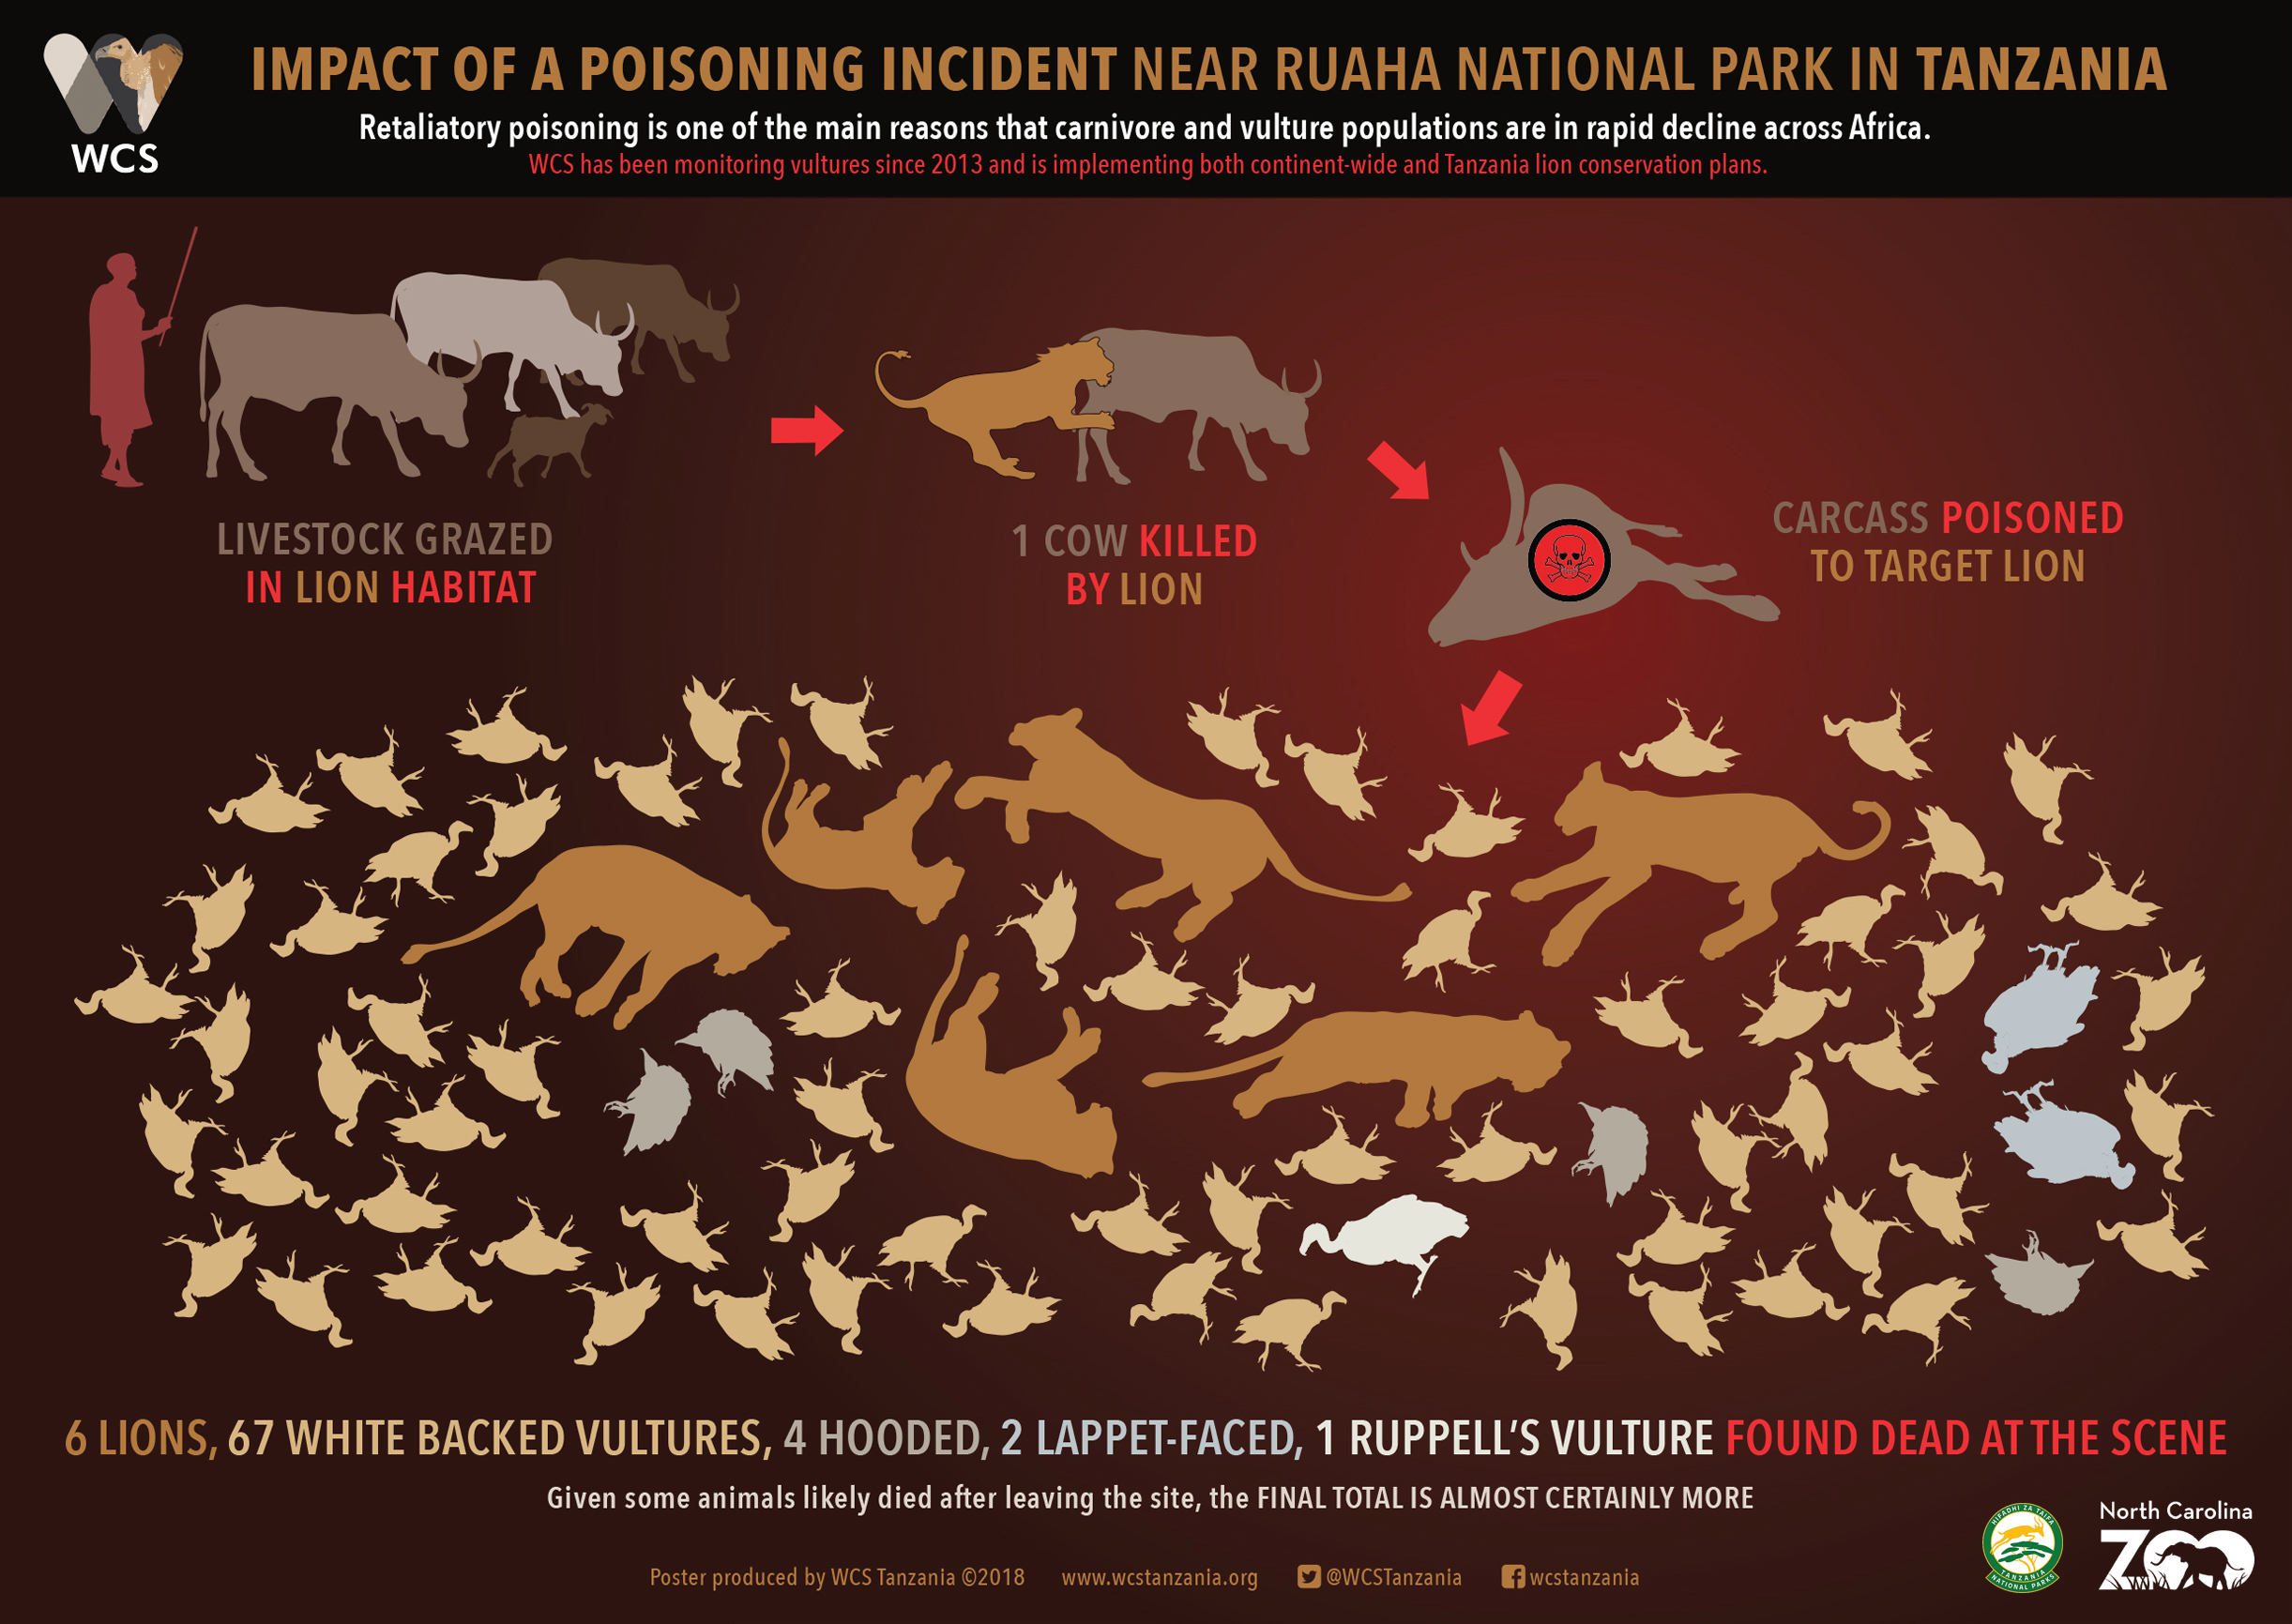 Vultures and Poisoning